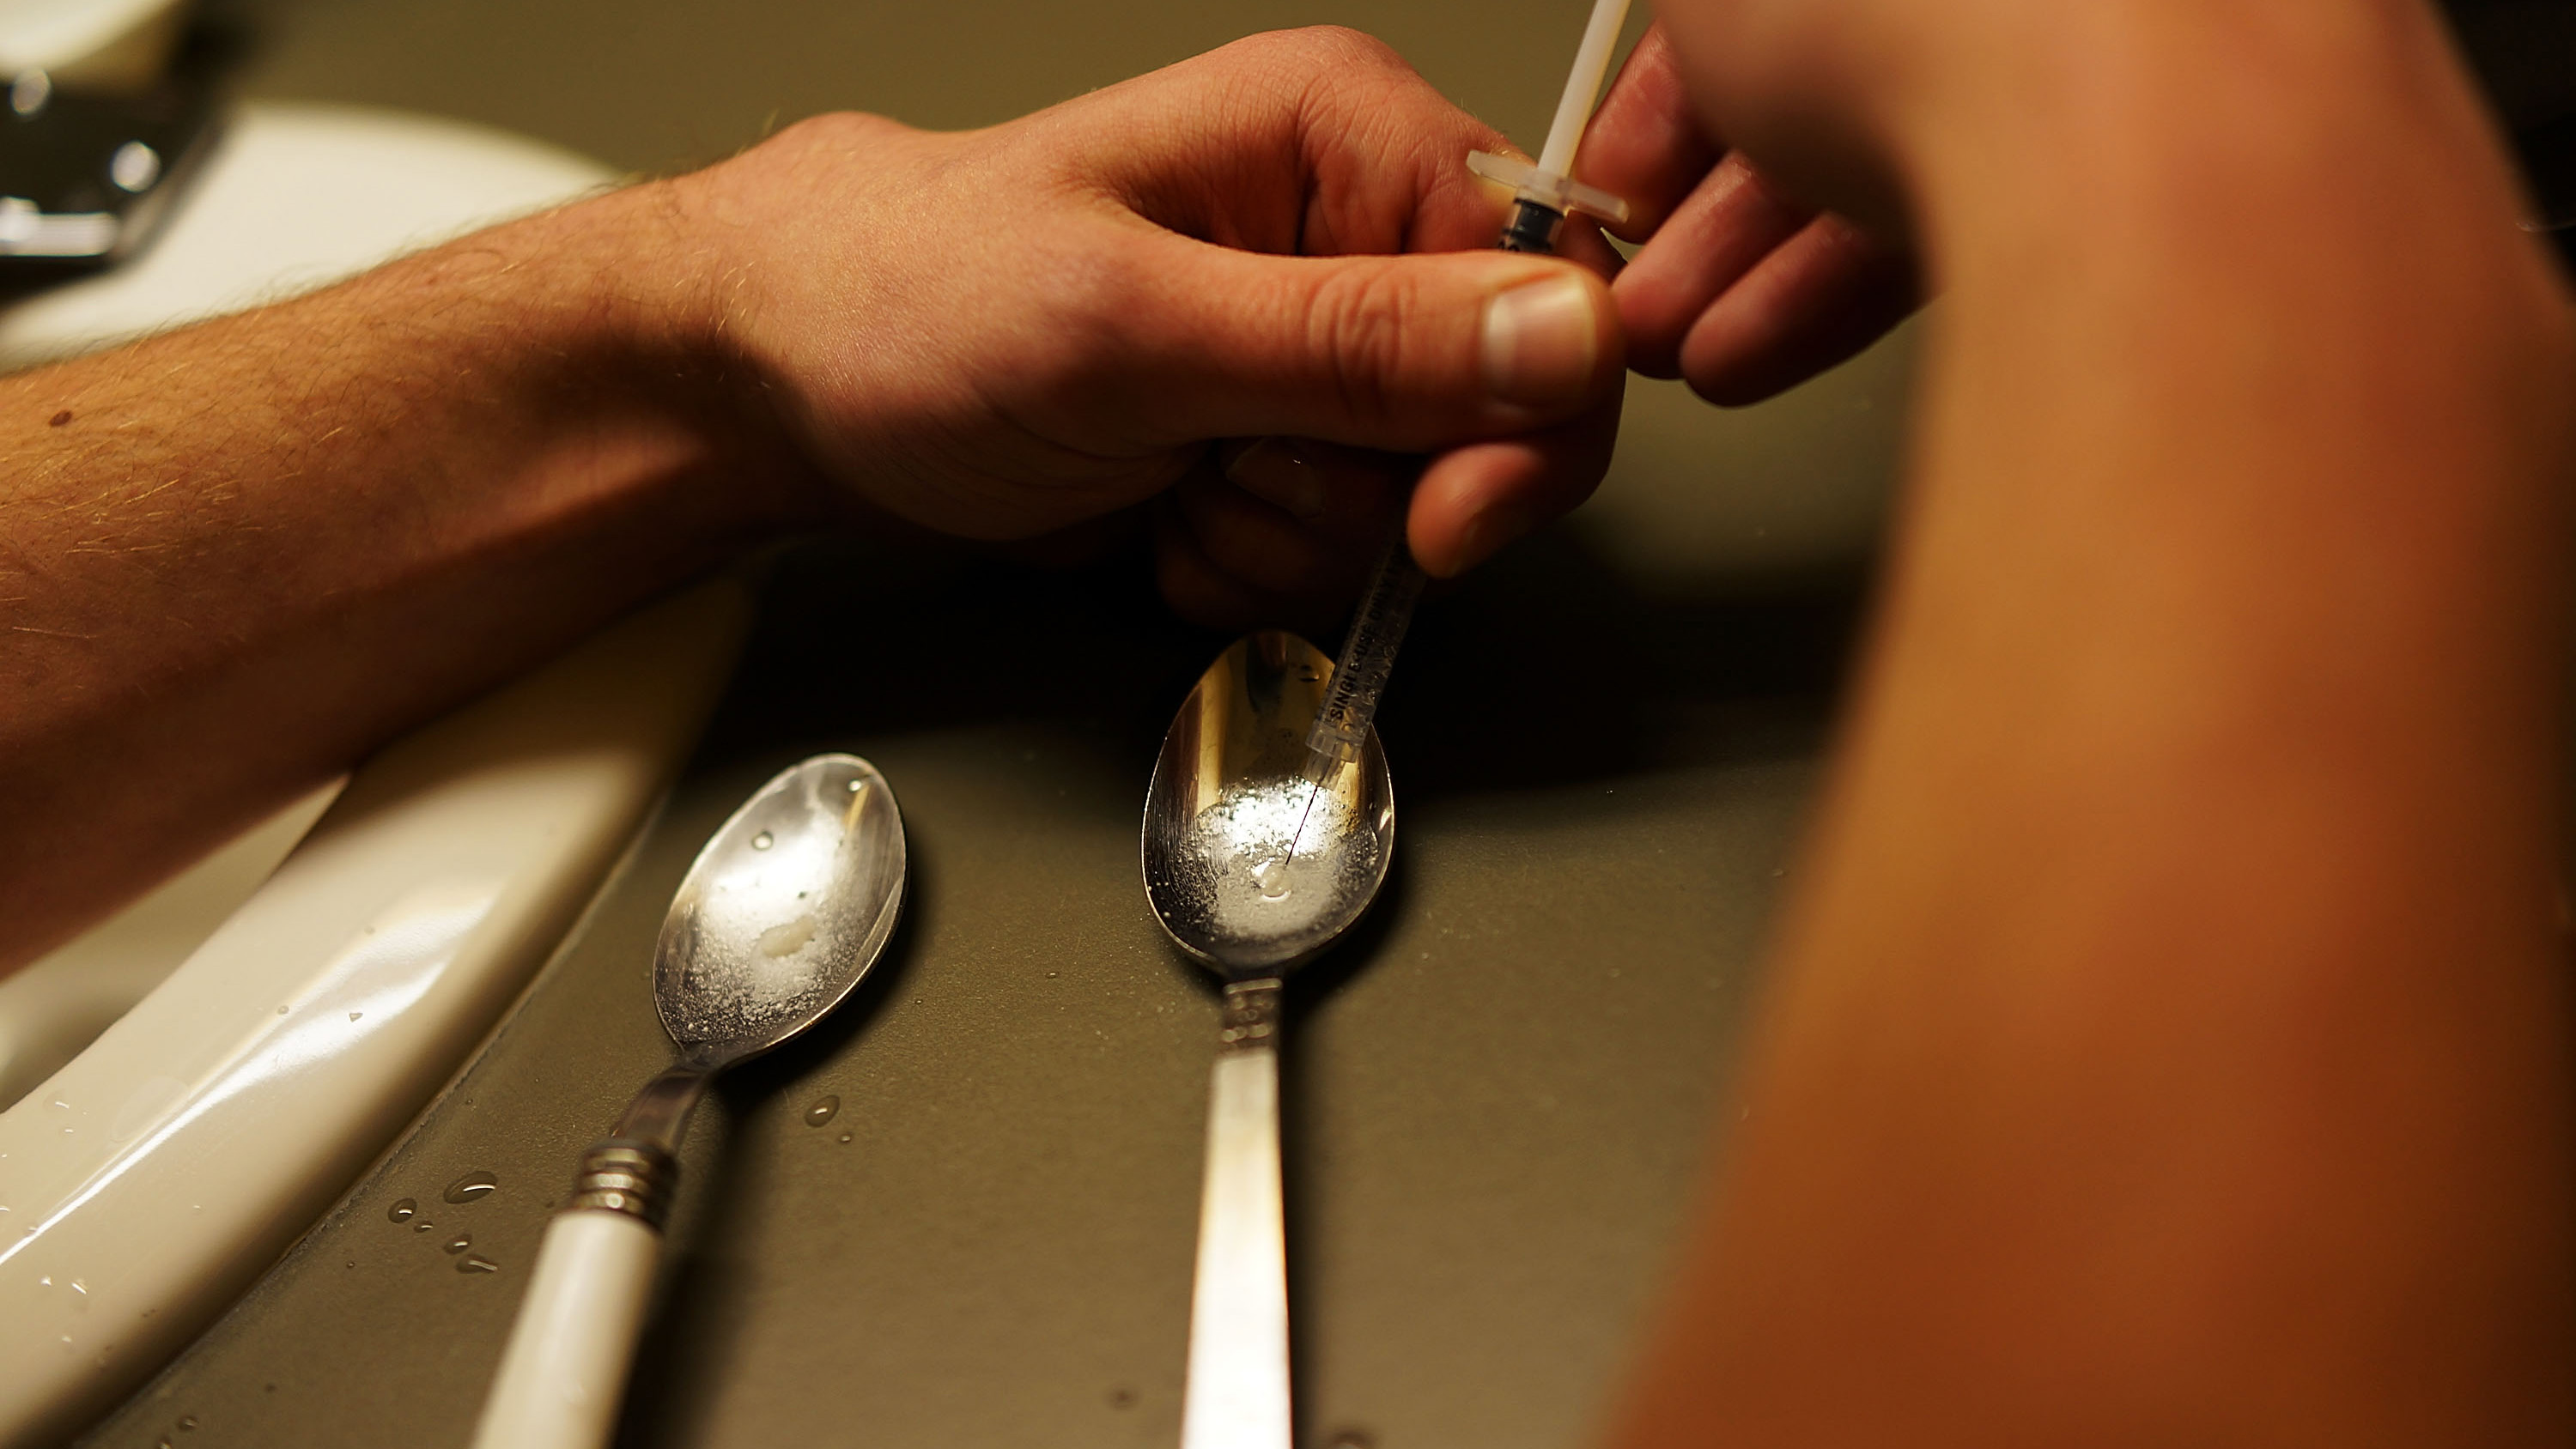 Heroin addicts shoot up in 'safe' bathrooms